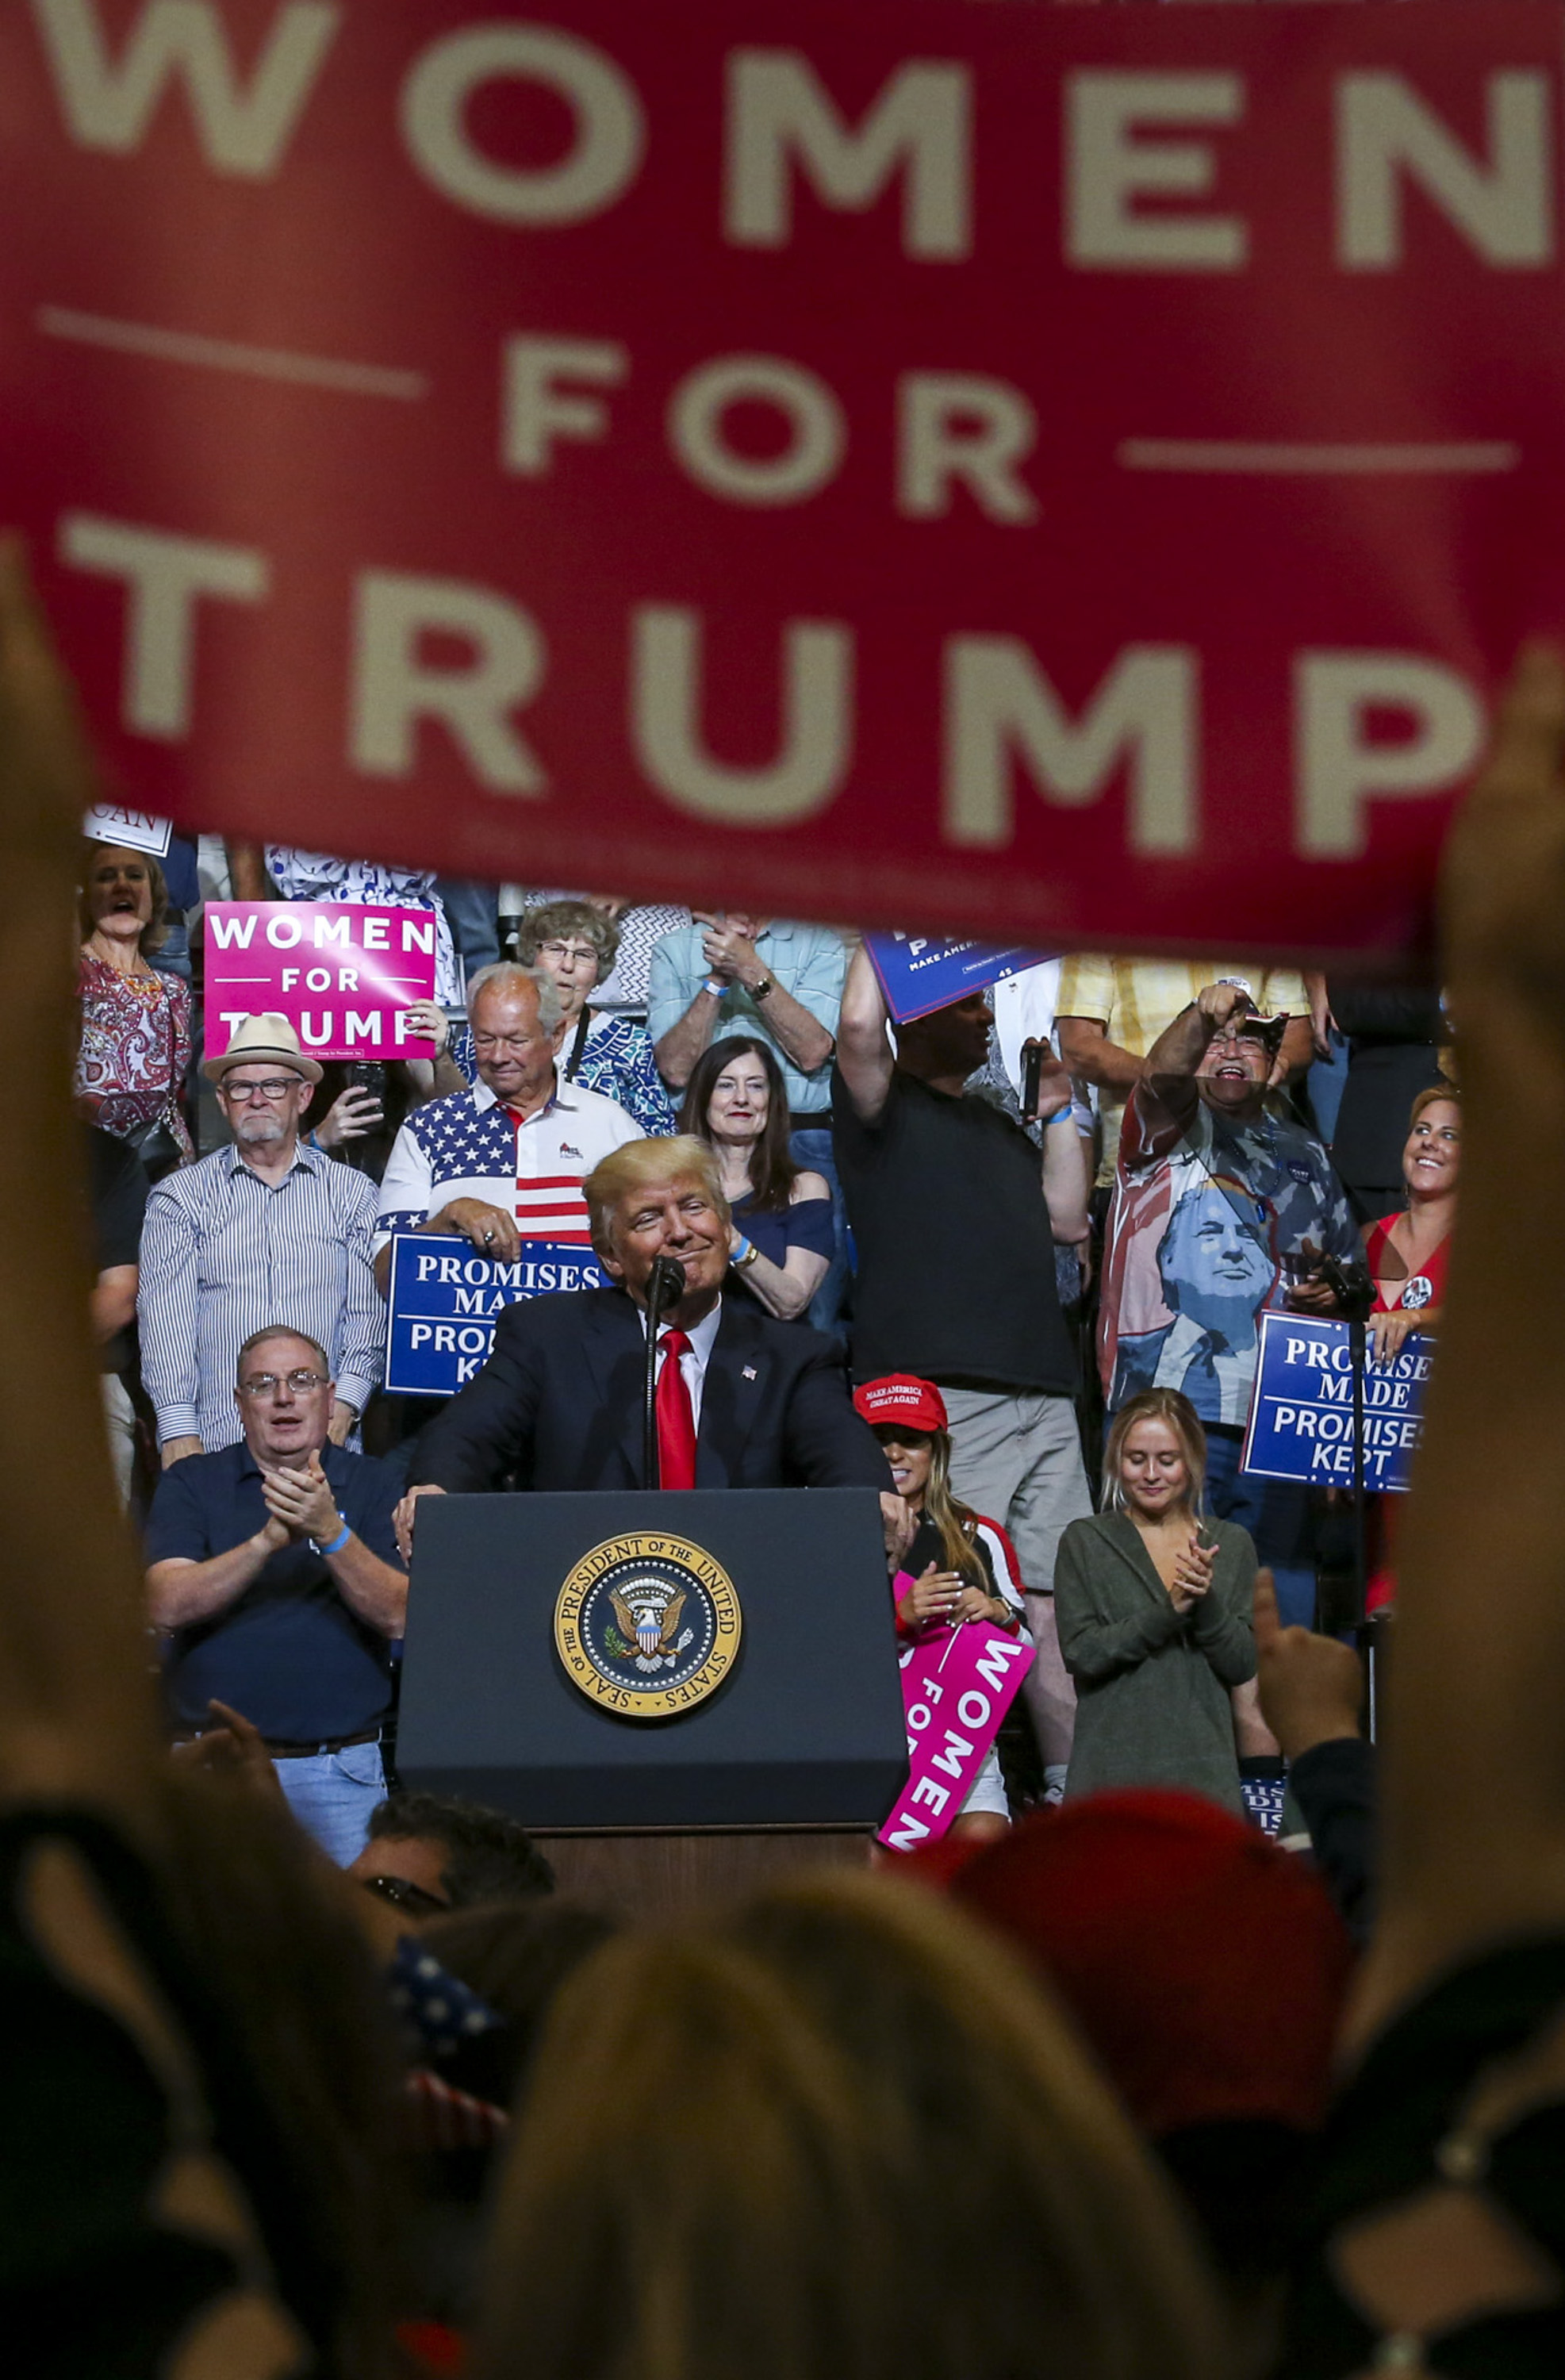 President Donald Trump speaks to supporters at a campaign rally at the U.S. Cellular Center in Cedar Rapids, Wednesday, June 21, 2017.